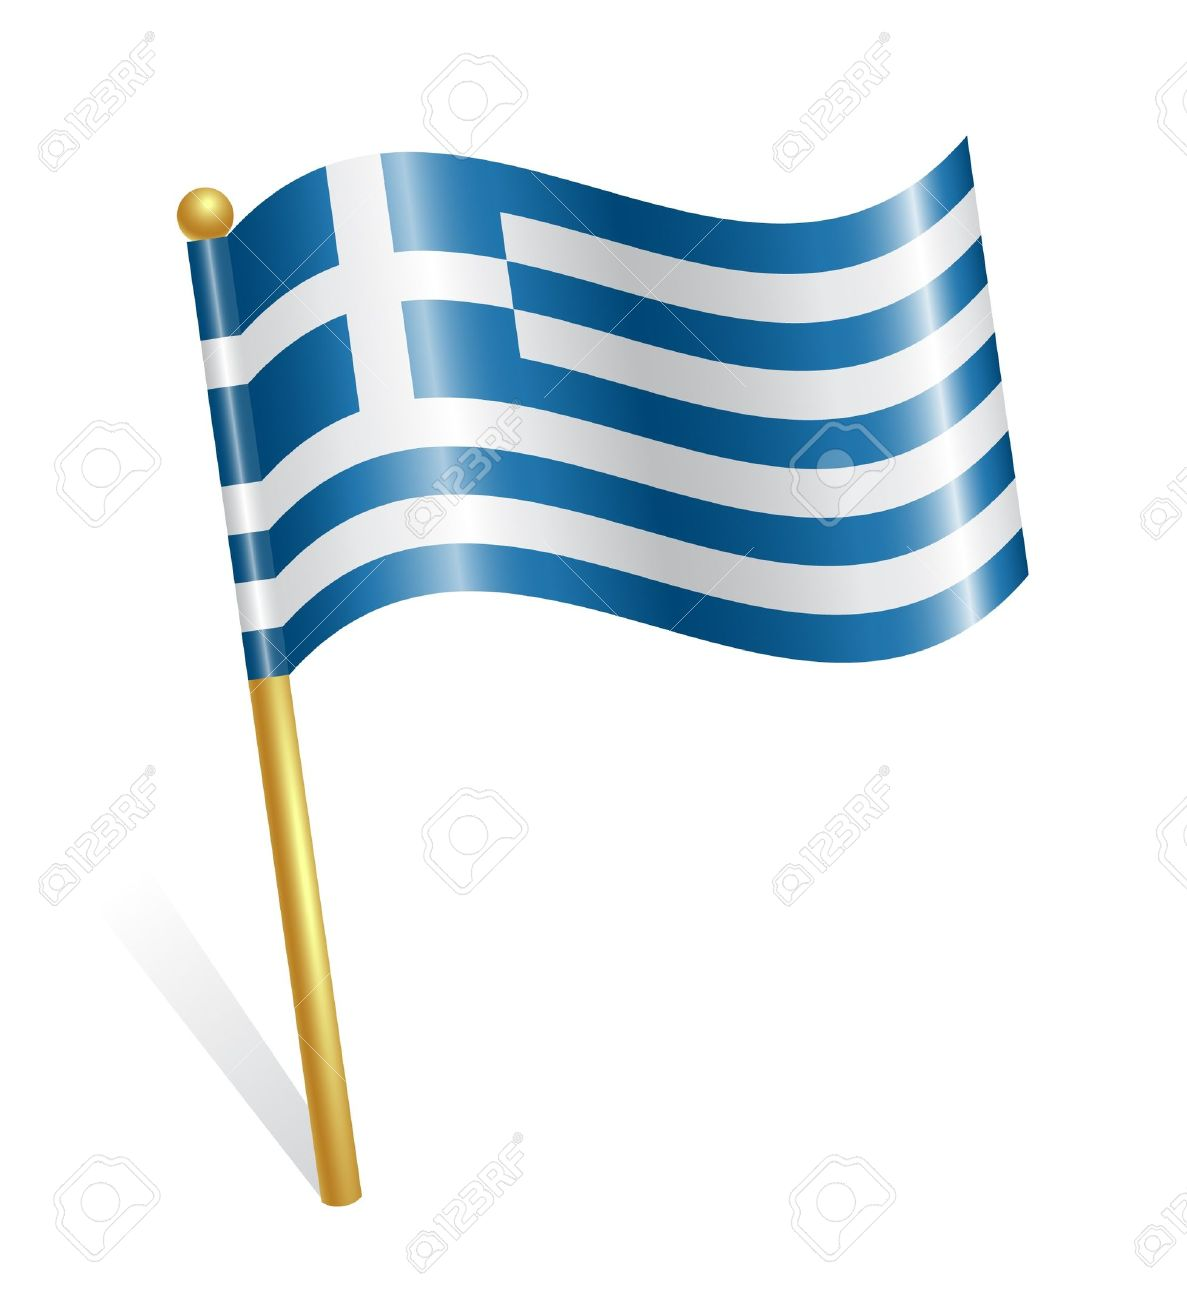 Greece Country Flag Royalty Free Cliparts, Vectors, And Stock.